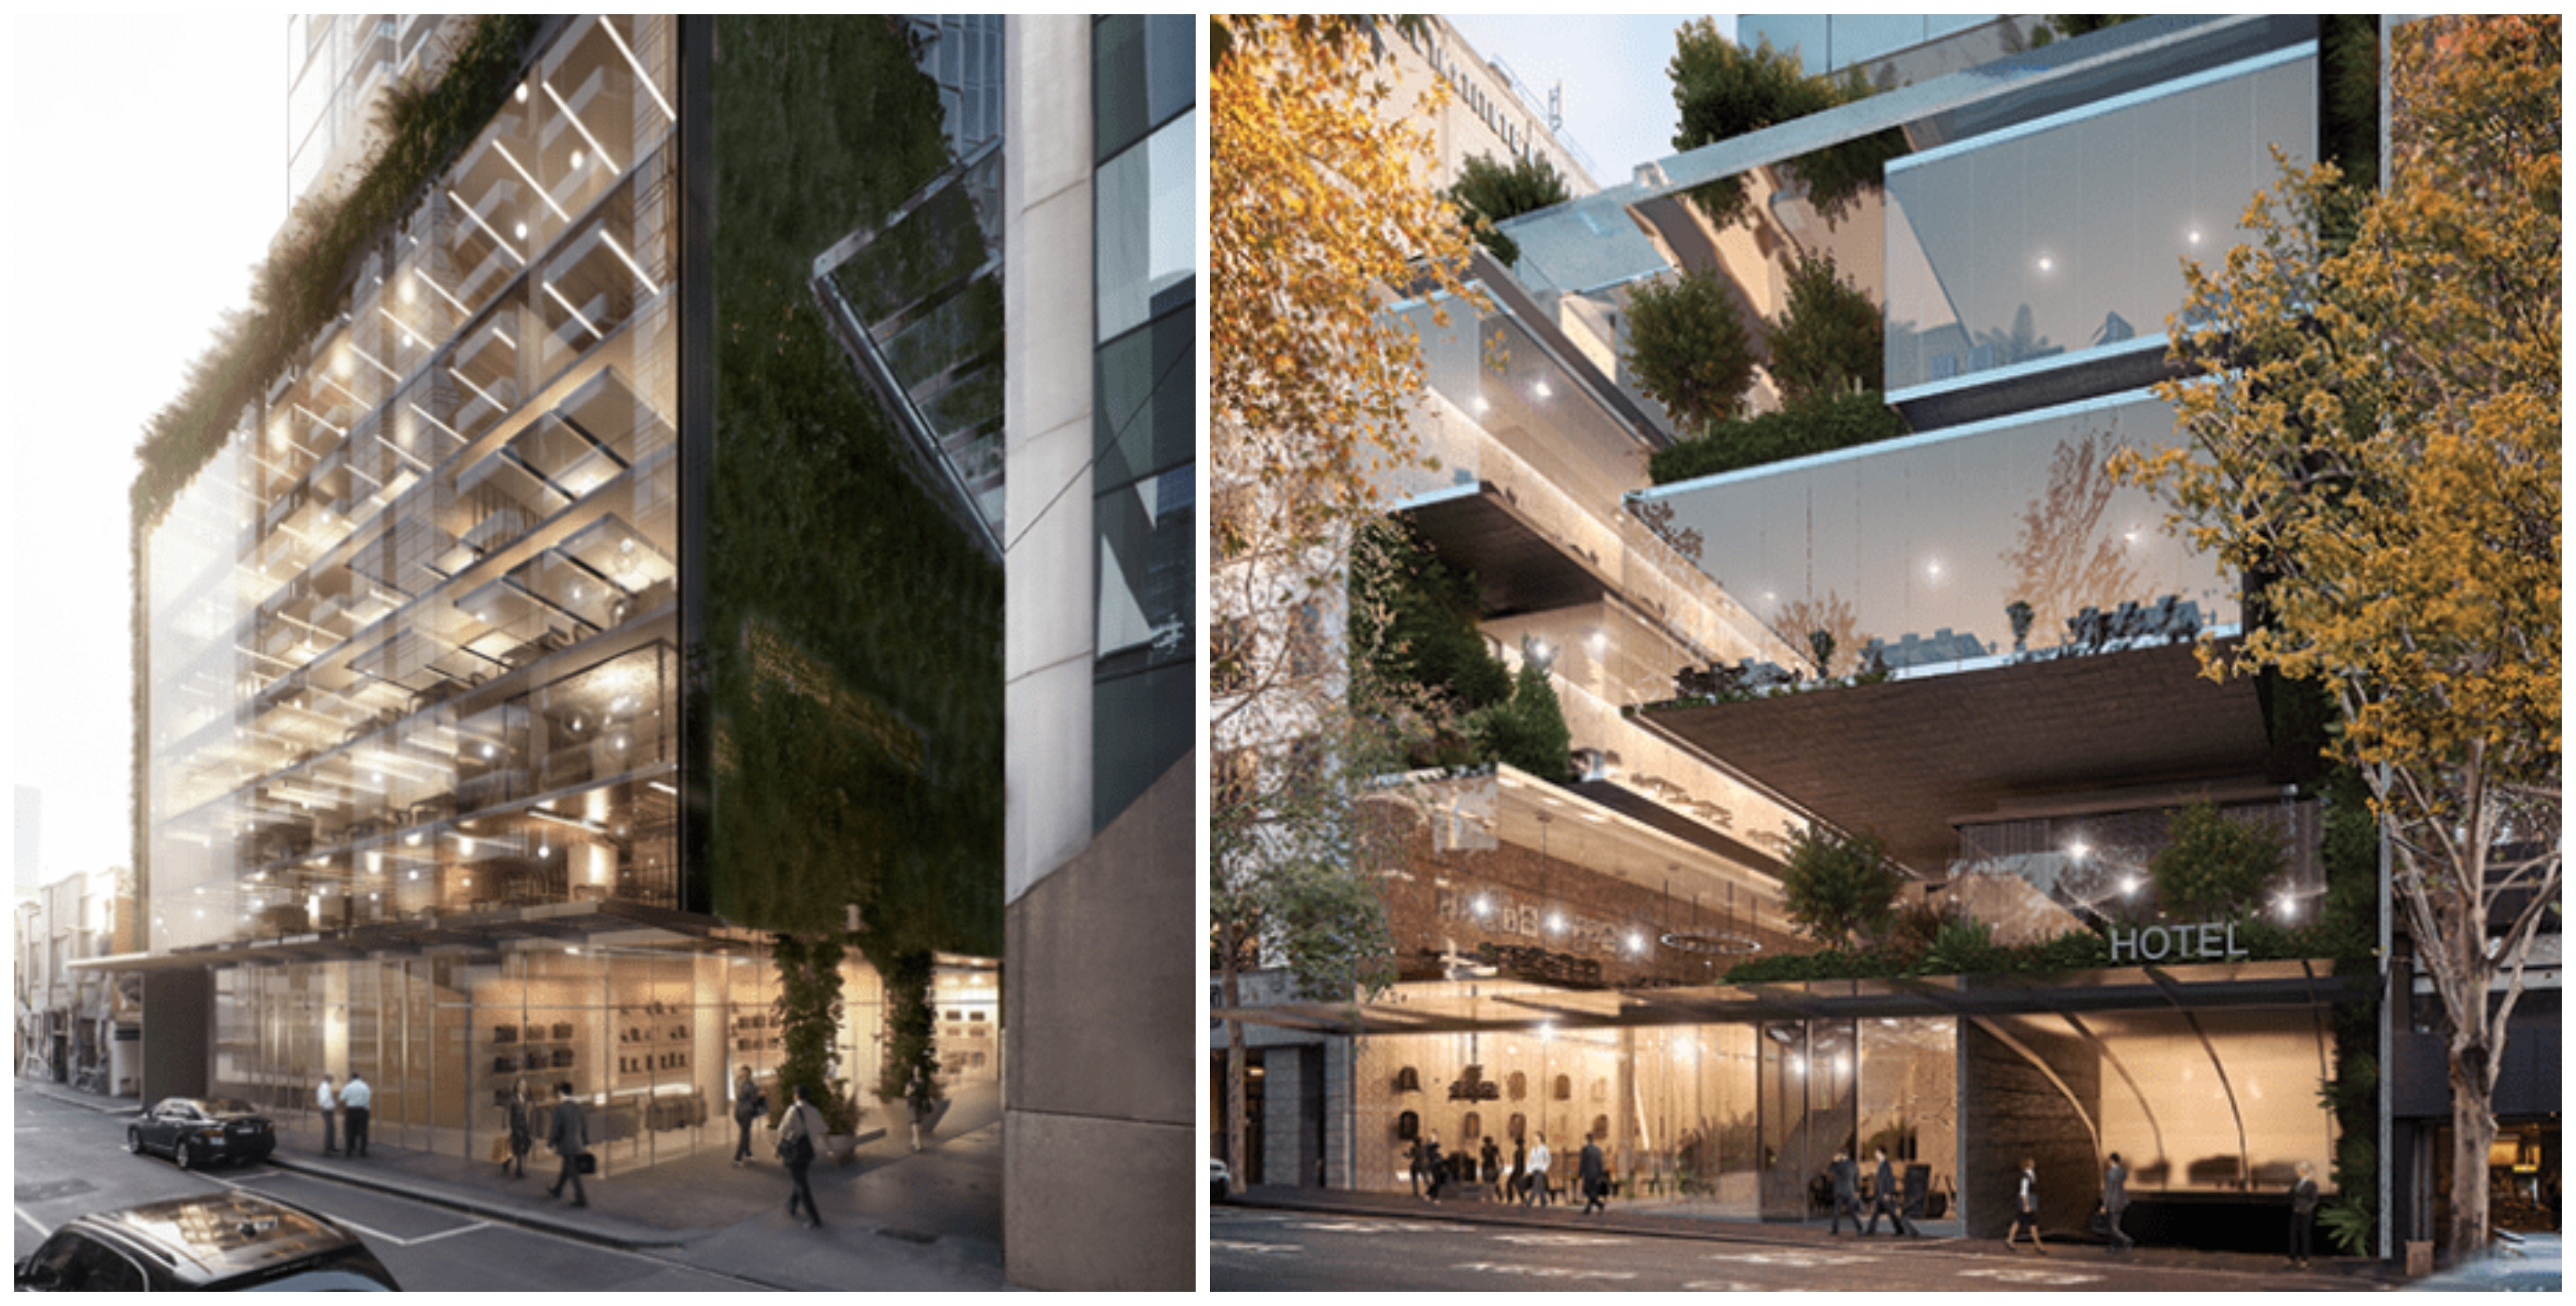 The voco Melbourne Central is due to open in 2020.